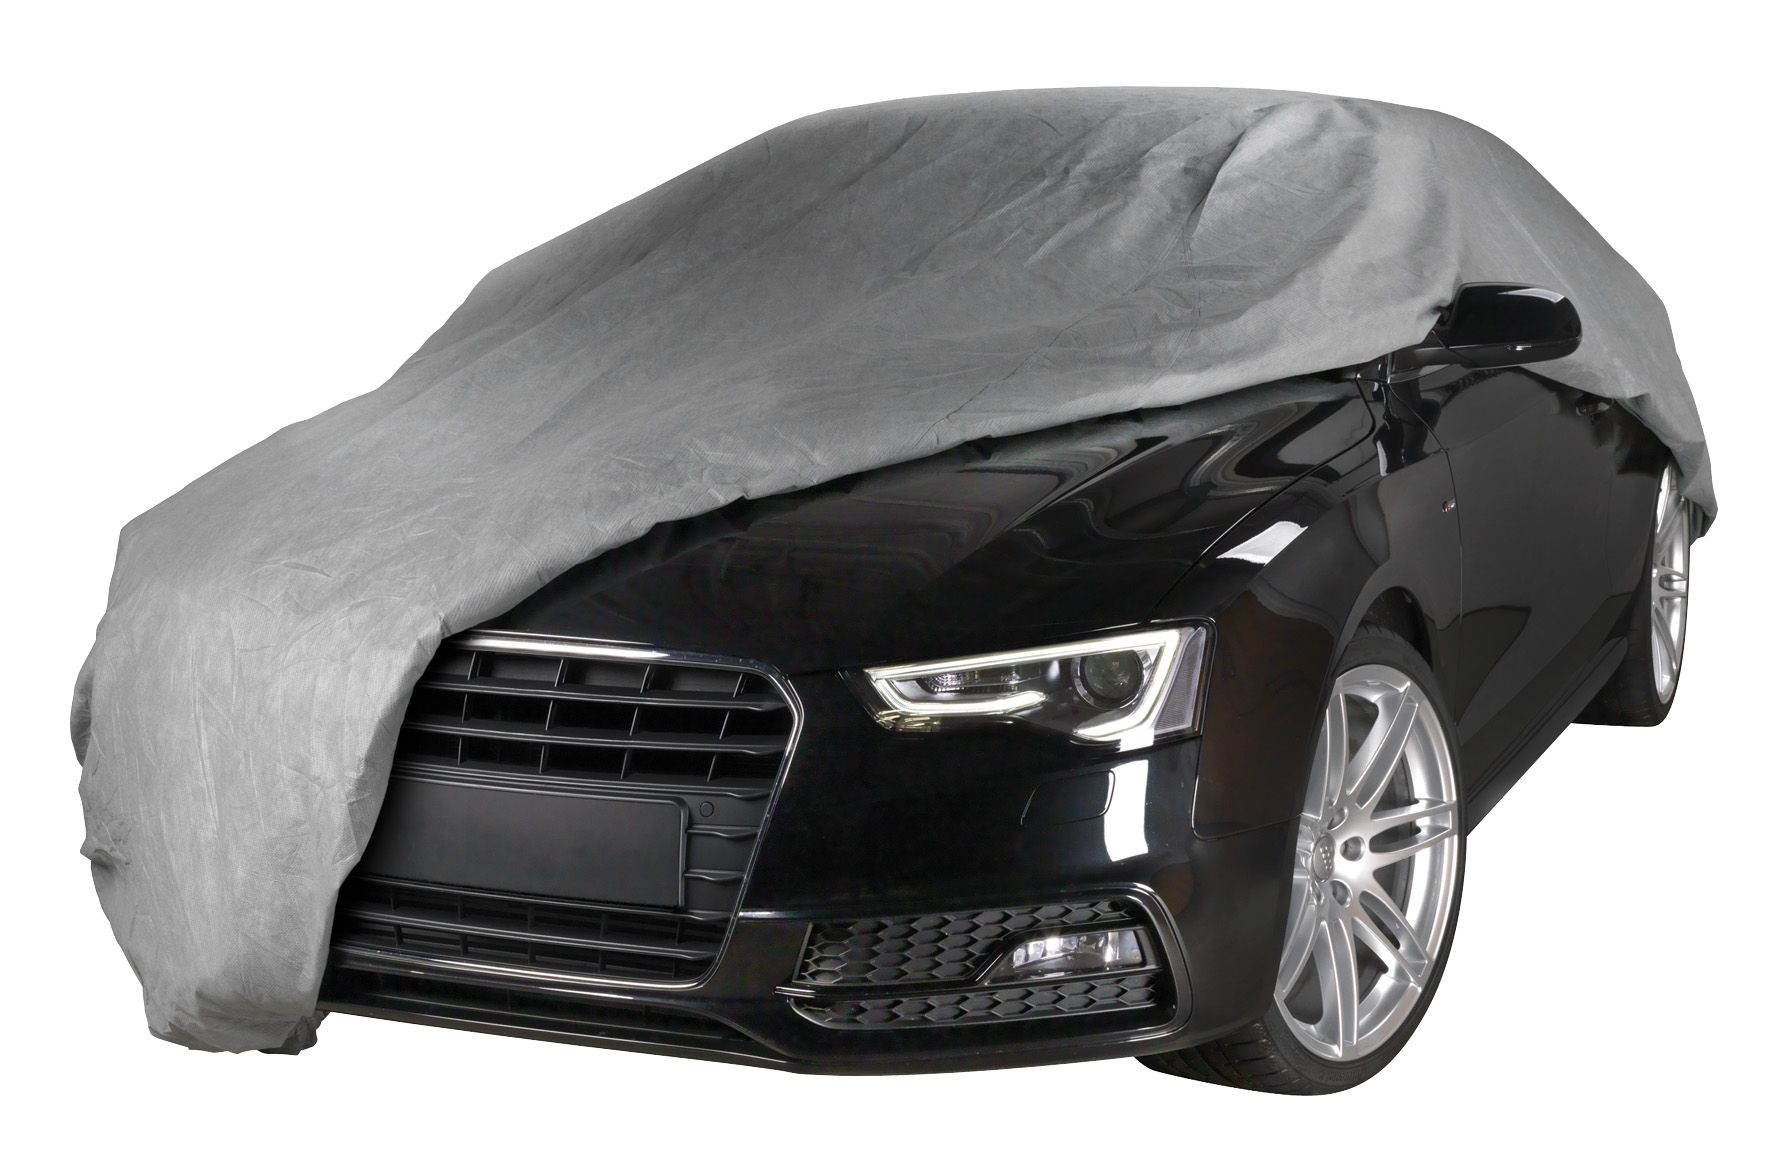 Sealey All Seasons Car Cover 3-Layer - Extra Large